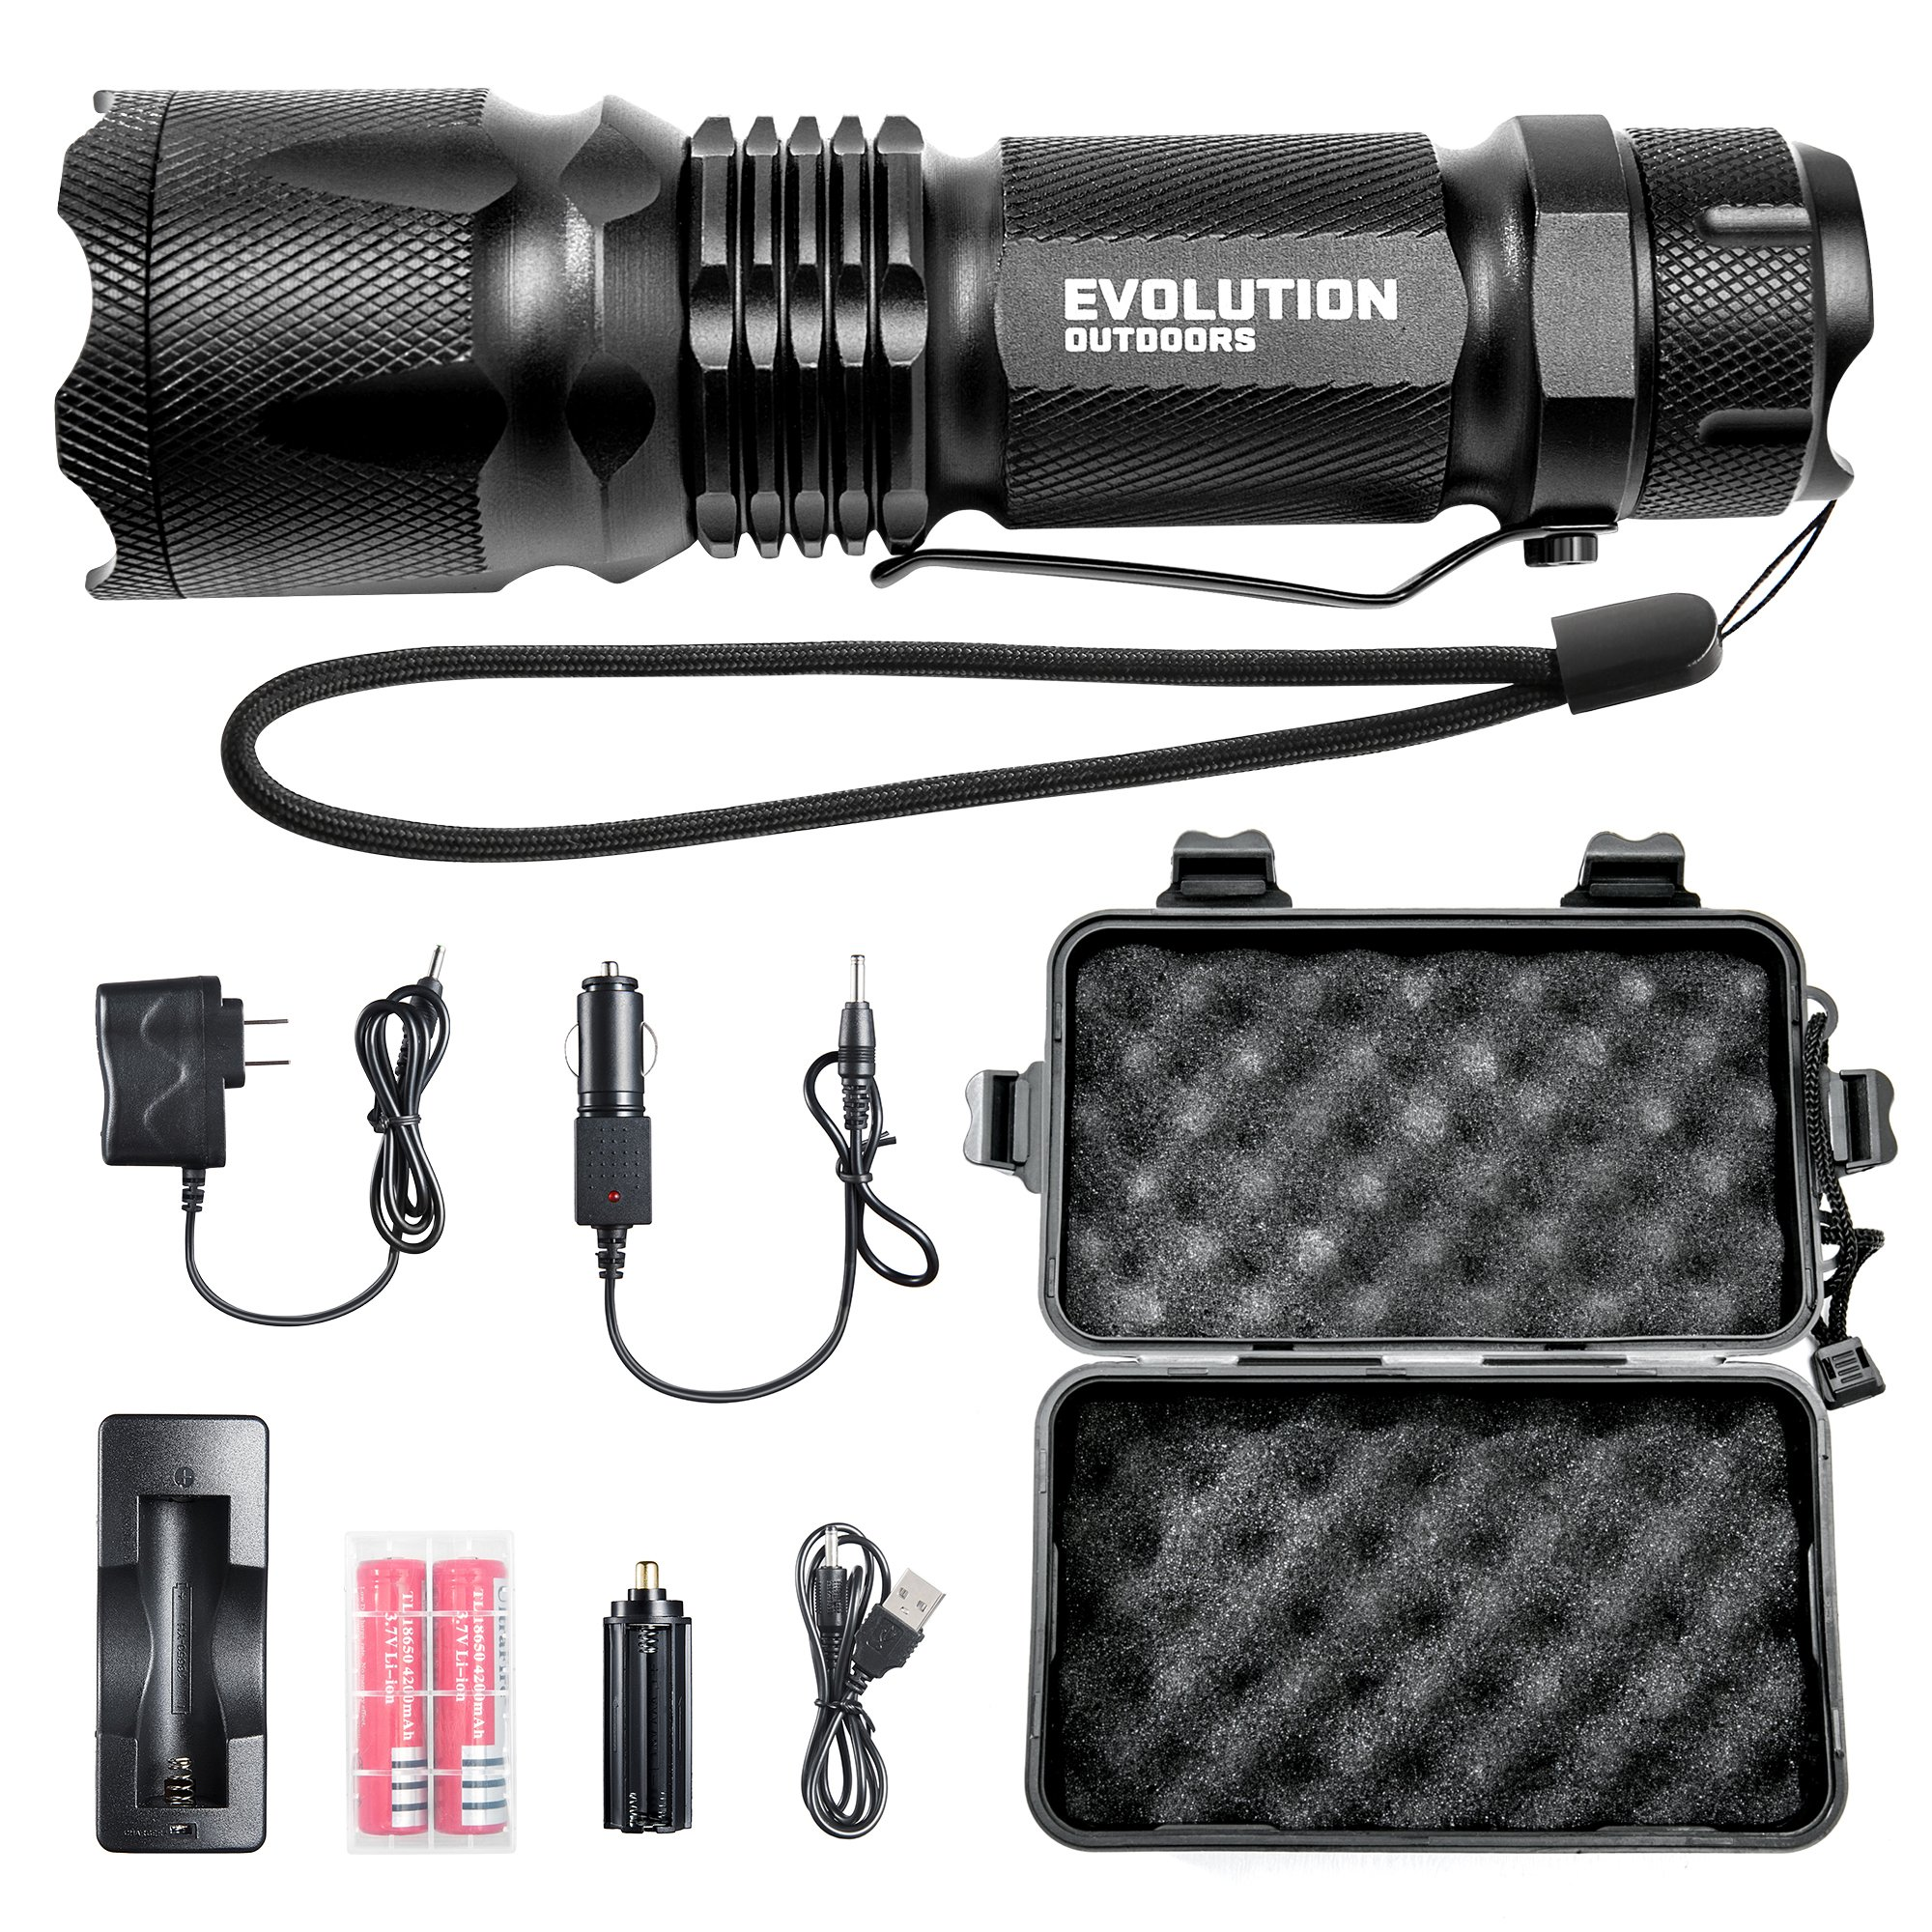 EVOLUTION OUTDOORS Military Tactical LED Flashlight - Bright 800 Lumens LED Torch Flashlight with 18650 Rechargeable Battery and Charger and AAA Battery Holder for Work, Car, Flashlights - 5 Modes